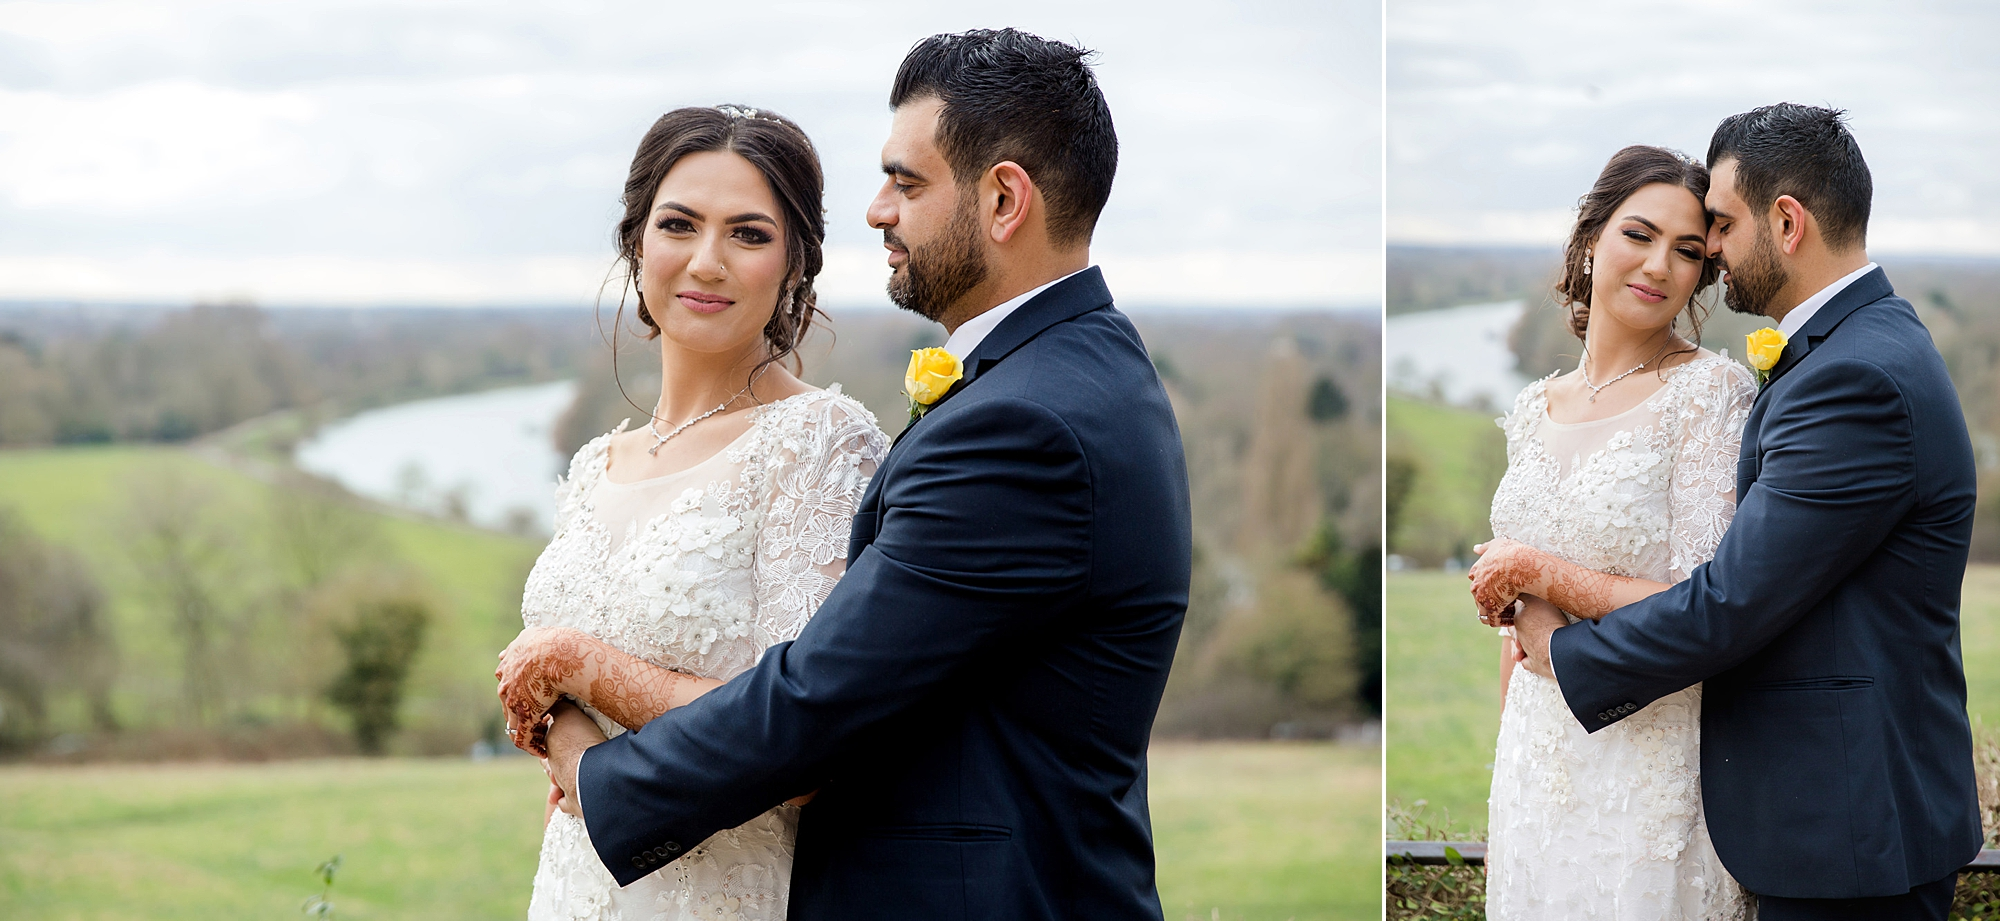 Richmond Hill Hotel wedding photography bride and groom together on richmond hill terrace